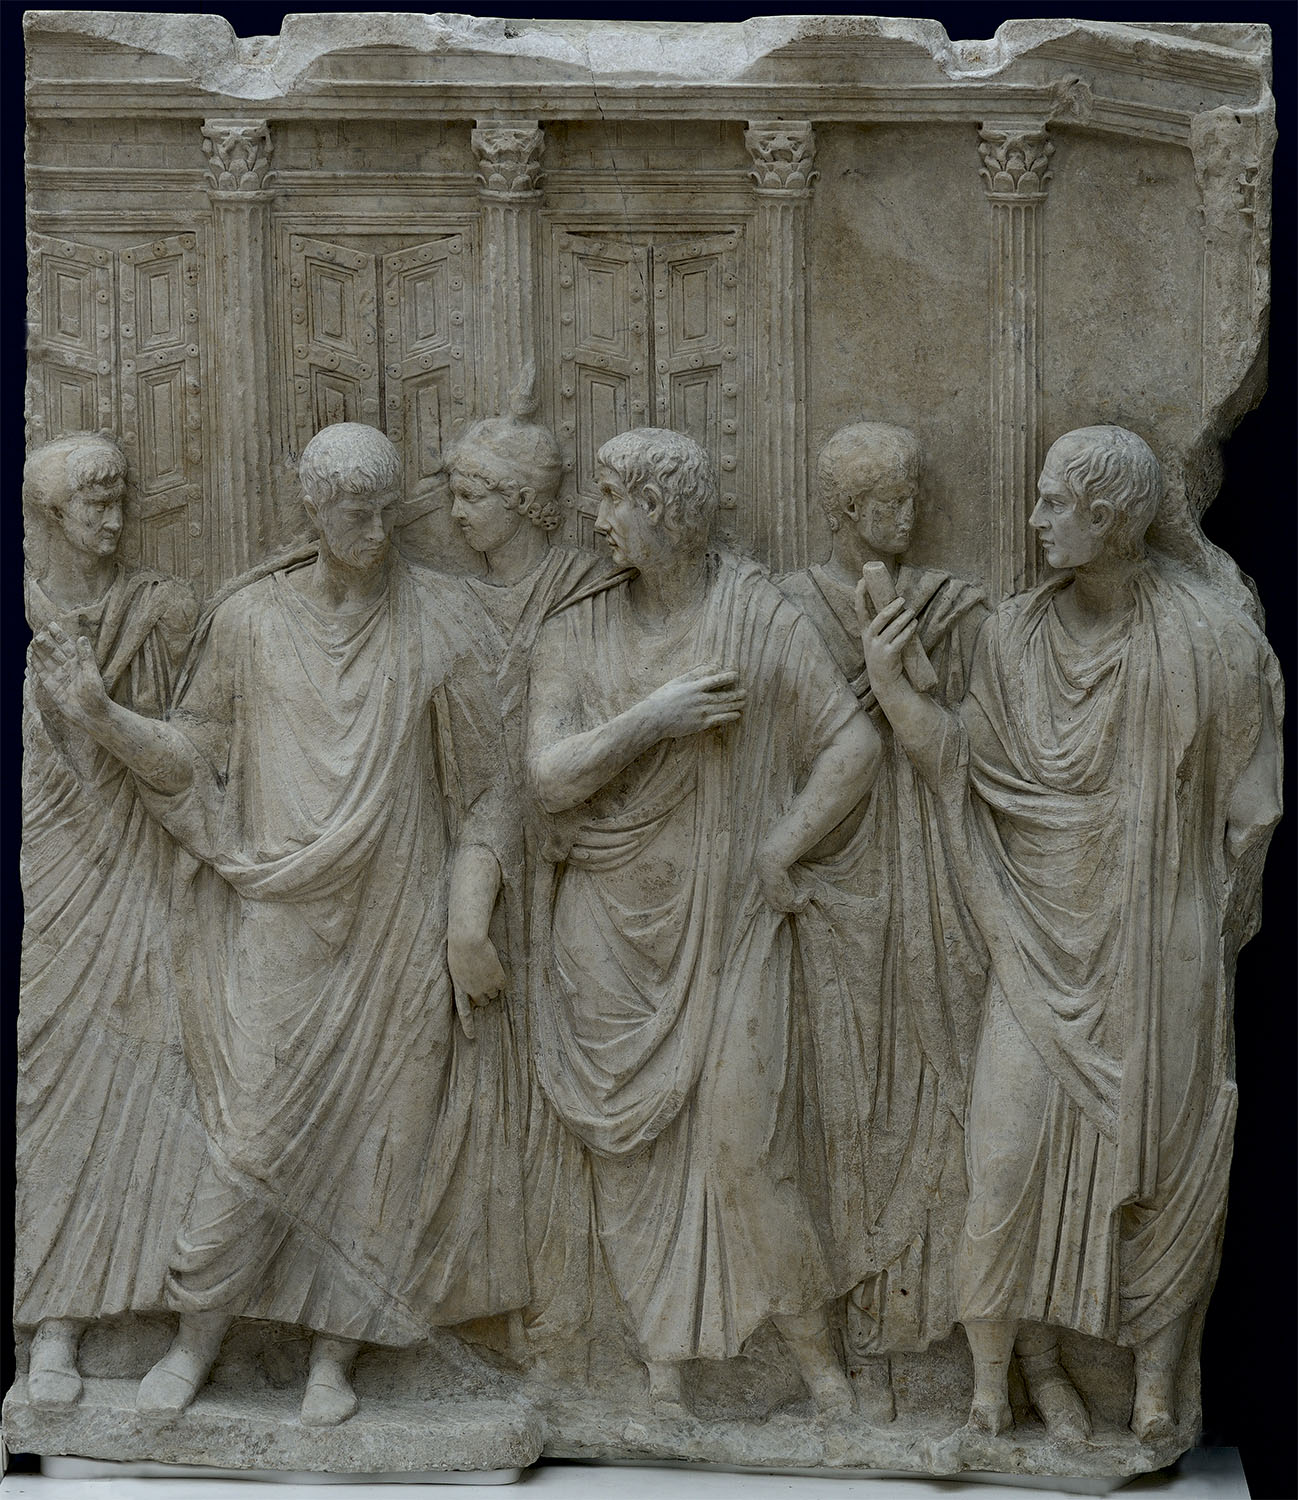 "Togate figures before the Temple of Jupiter Optimus Maximus Capitolinus. Right panel of the relief ""Sacrifice in Front of the Temple of Juppiter Capitolinus."" Marble. Ca. 118—125 CE.  Inv. No. MR 792 (MA 1089). Paris, Louvre Museum"